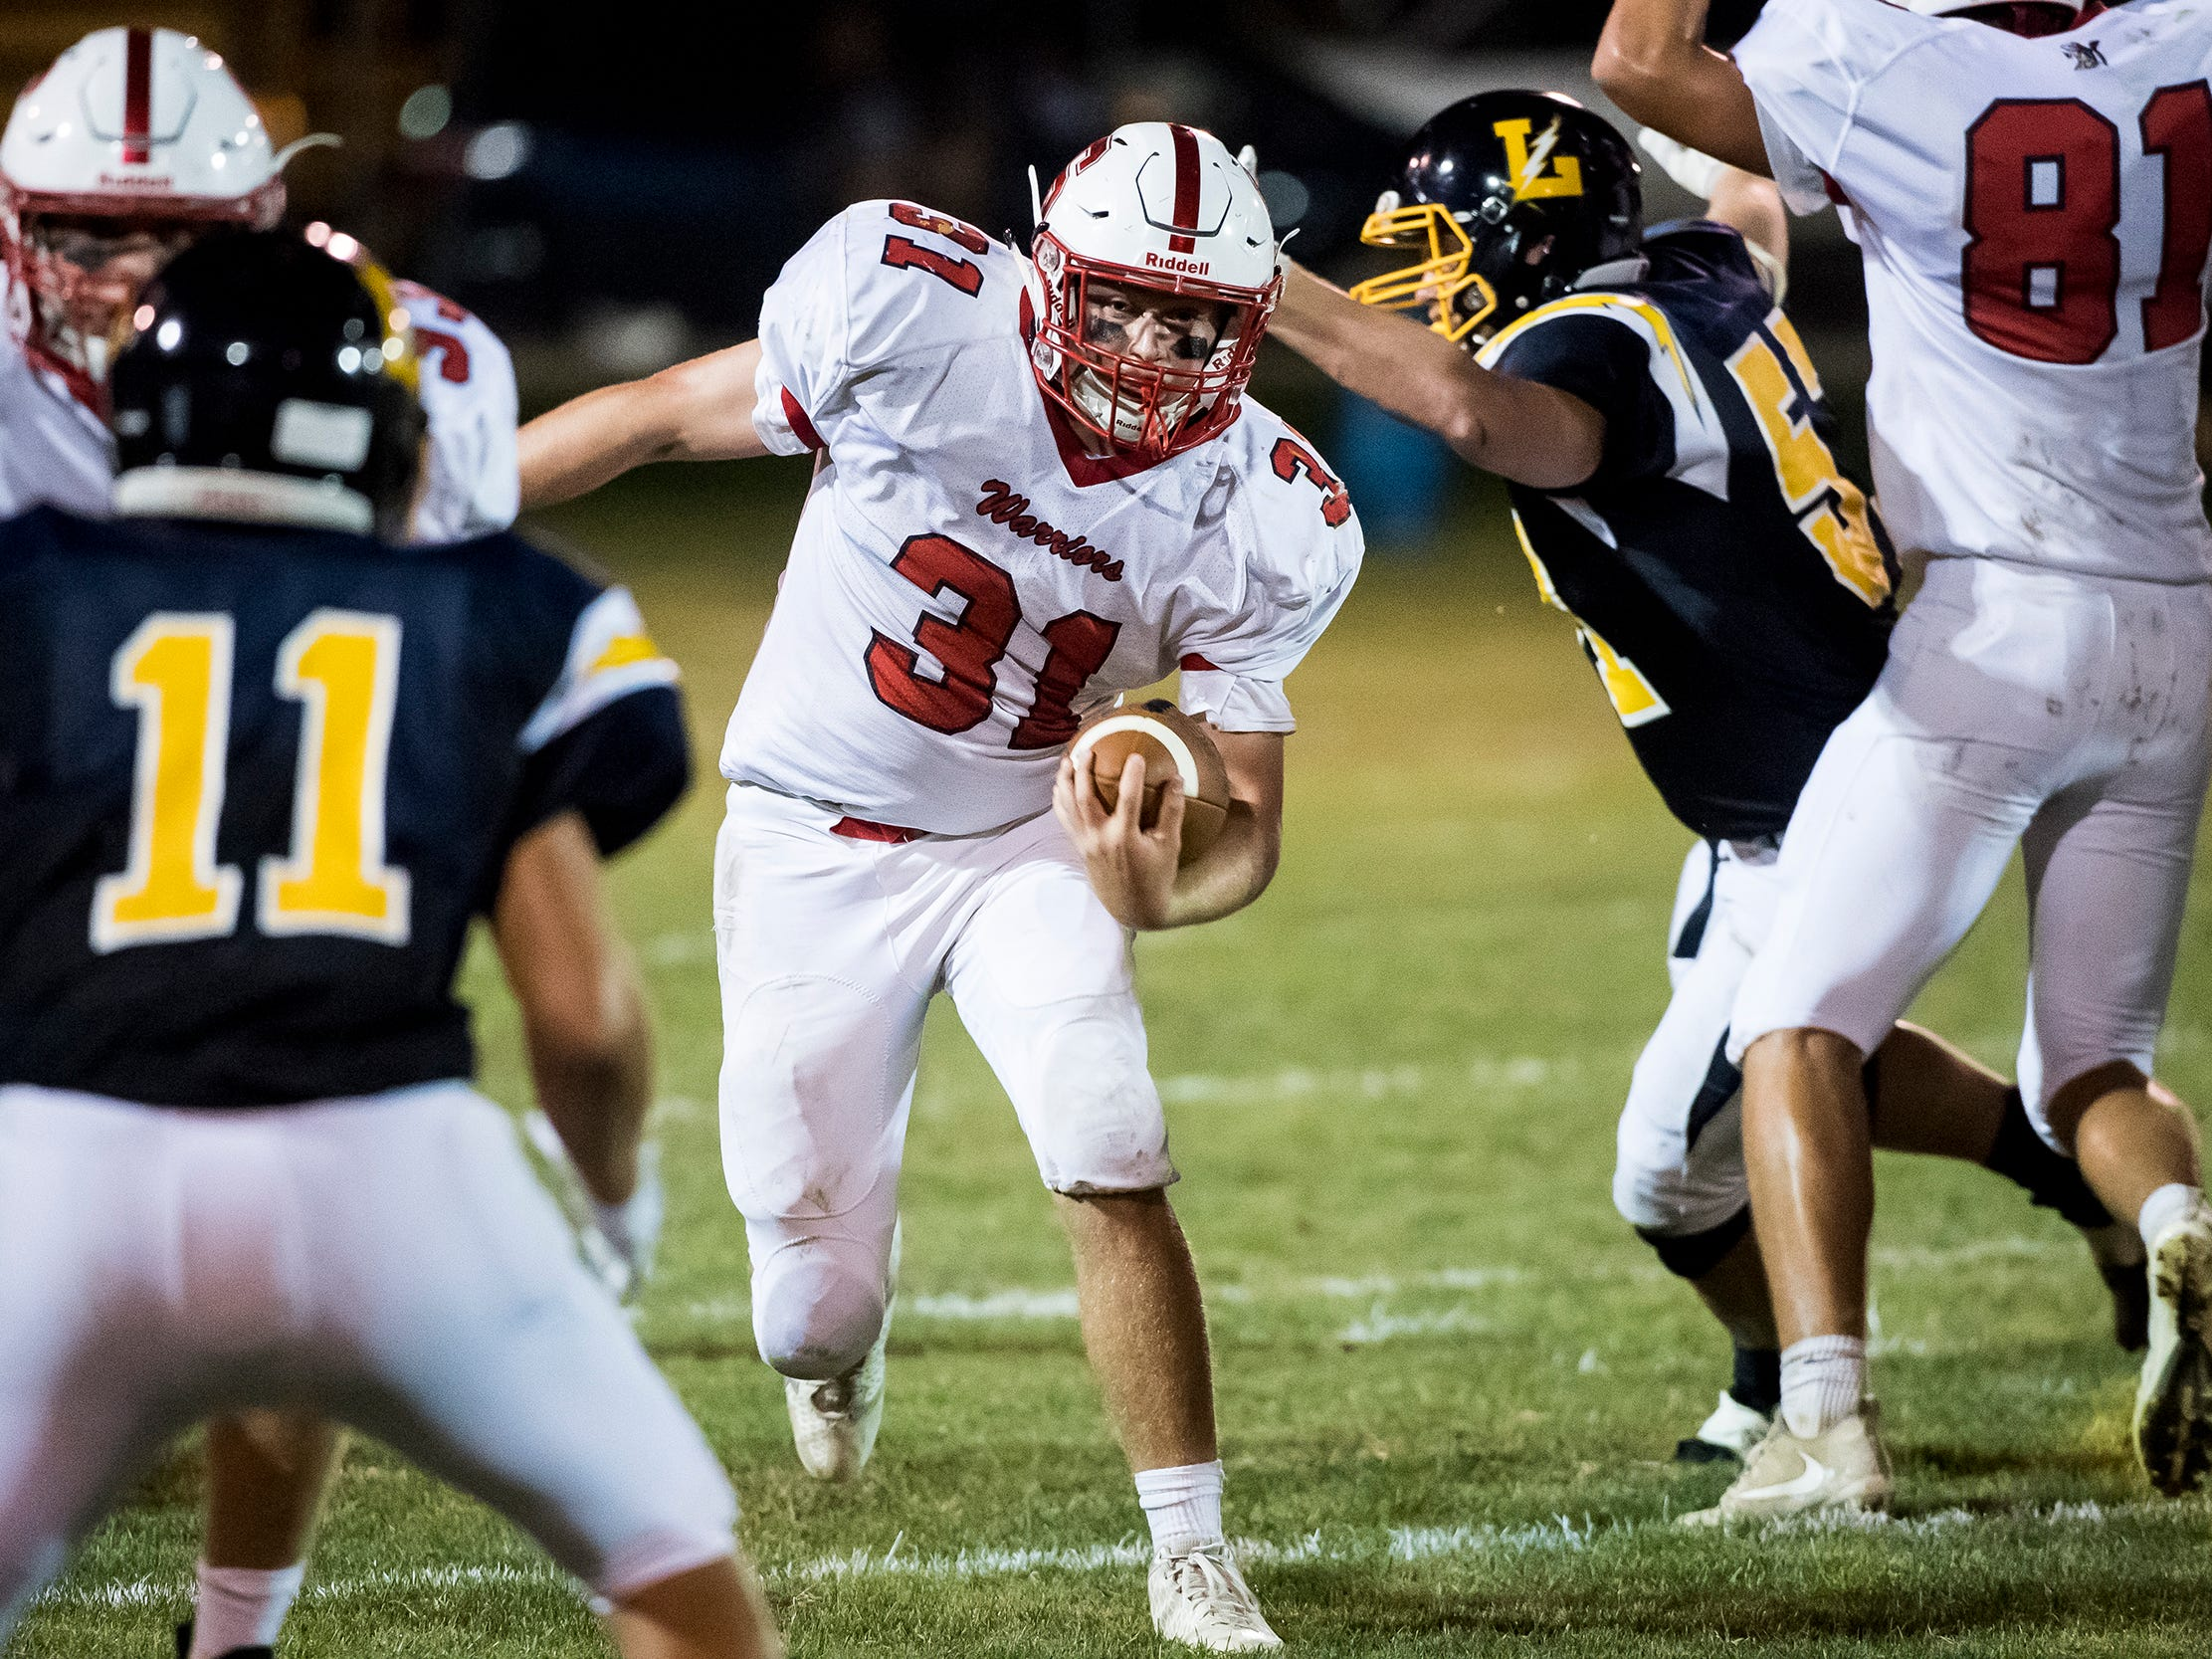 Susquehannock Allen Clapp carries the ball against Littlestown on Friday, August 31, 2018. The Bolts beat the Warriors 29-14.